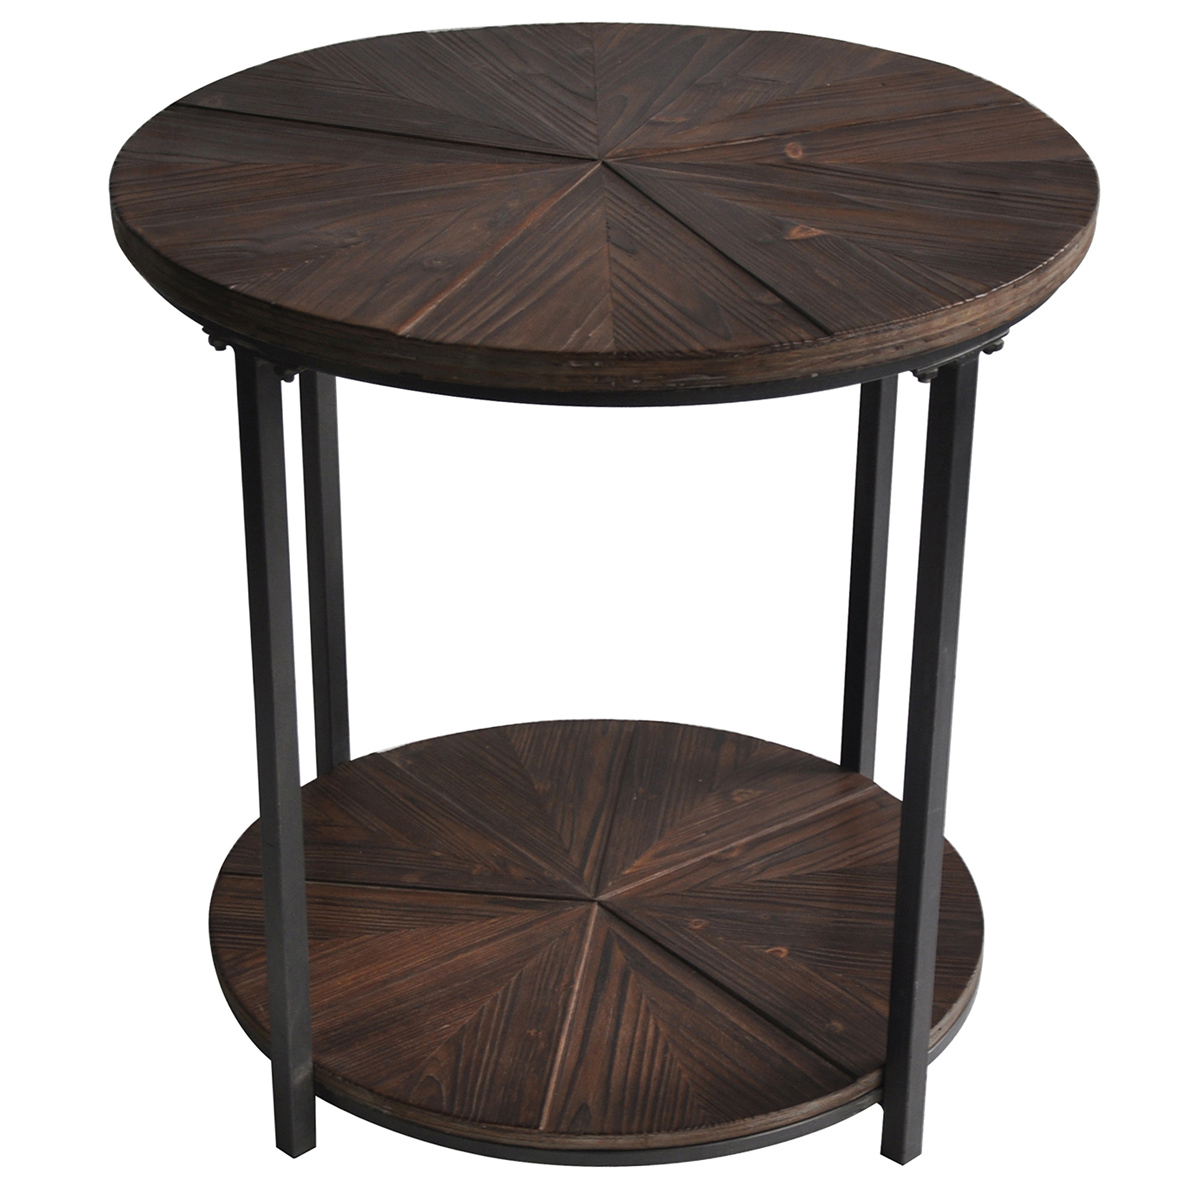 jackson round metal and rustic wood end table pedestal lamp small accent tables under sofa pottery barn desk outdoor farmhouse ashley home furniture clearance center shoe dining